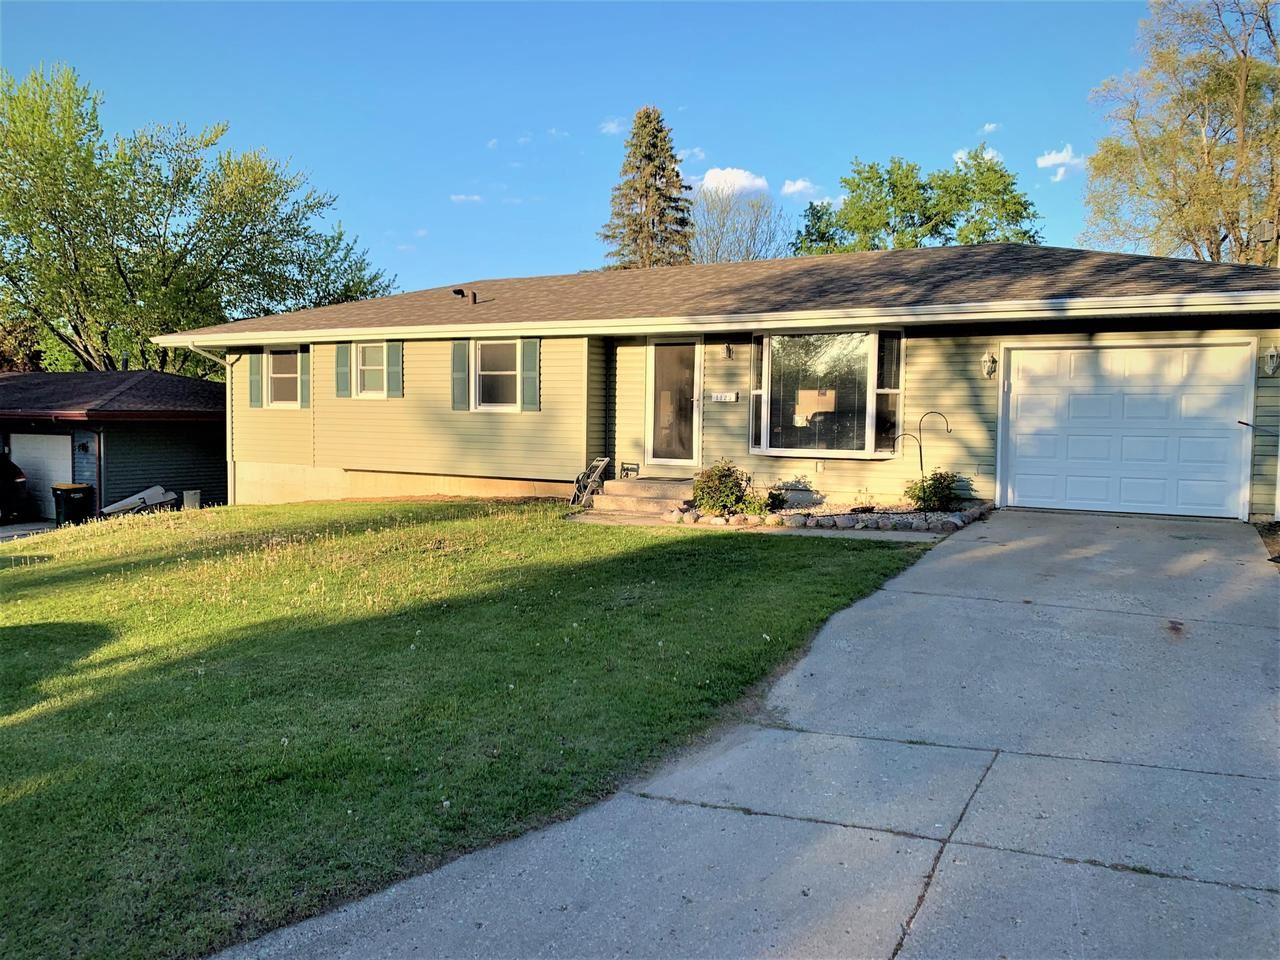 1123 Maple St, Fort Atkinson, WI 53538 - #: 374769